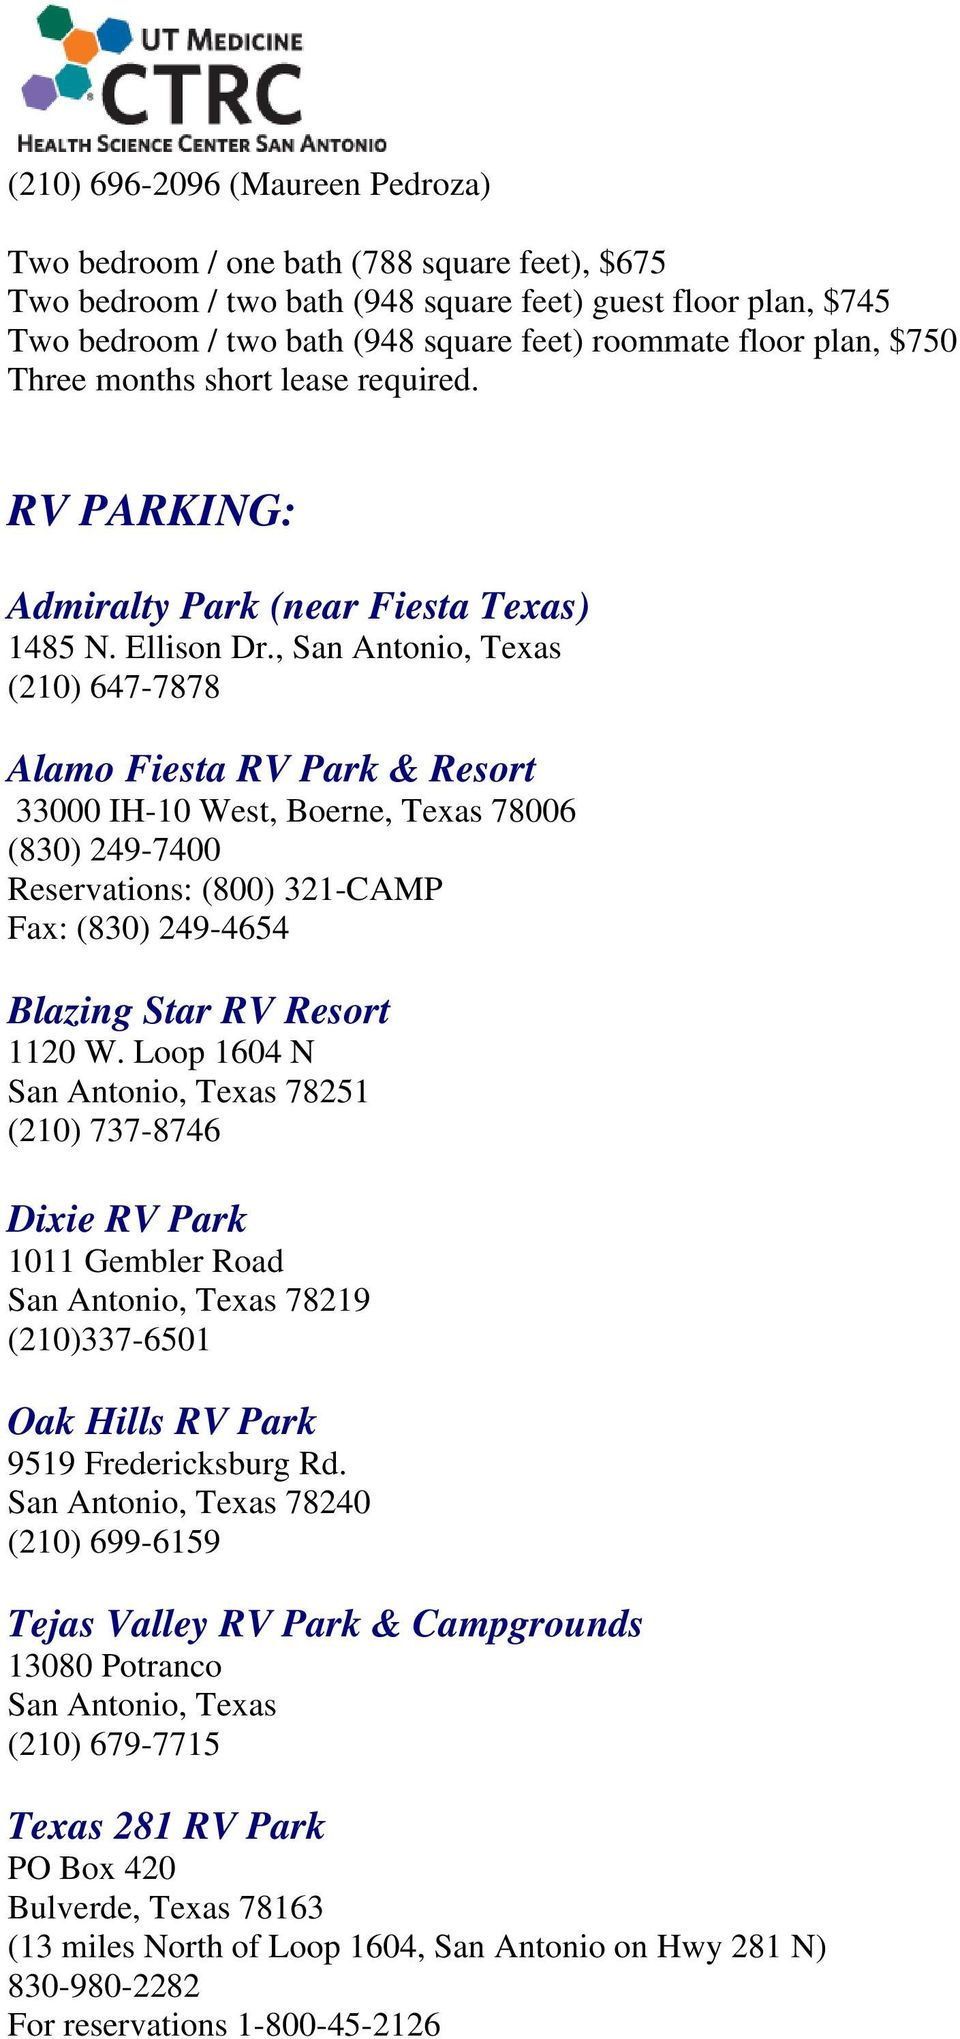 , San Antonio, Texas (210) 647-7878 Alamo Fiesta RV Park & Resort 33000 IH-10 West, Boerne, Texas 78006 (830) 249-7400 Reservations: (800) 321-CAMP Fax: (830) 249-4654 Blazing Star RV Resort 1120 W.